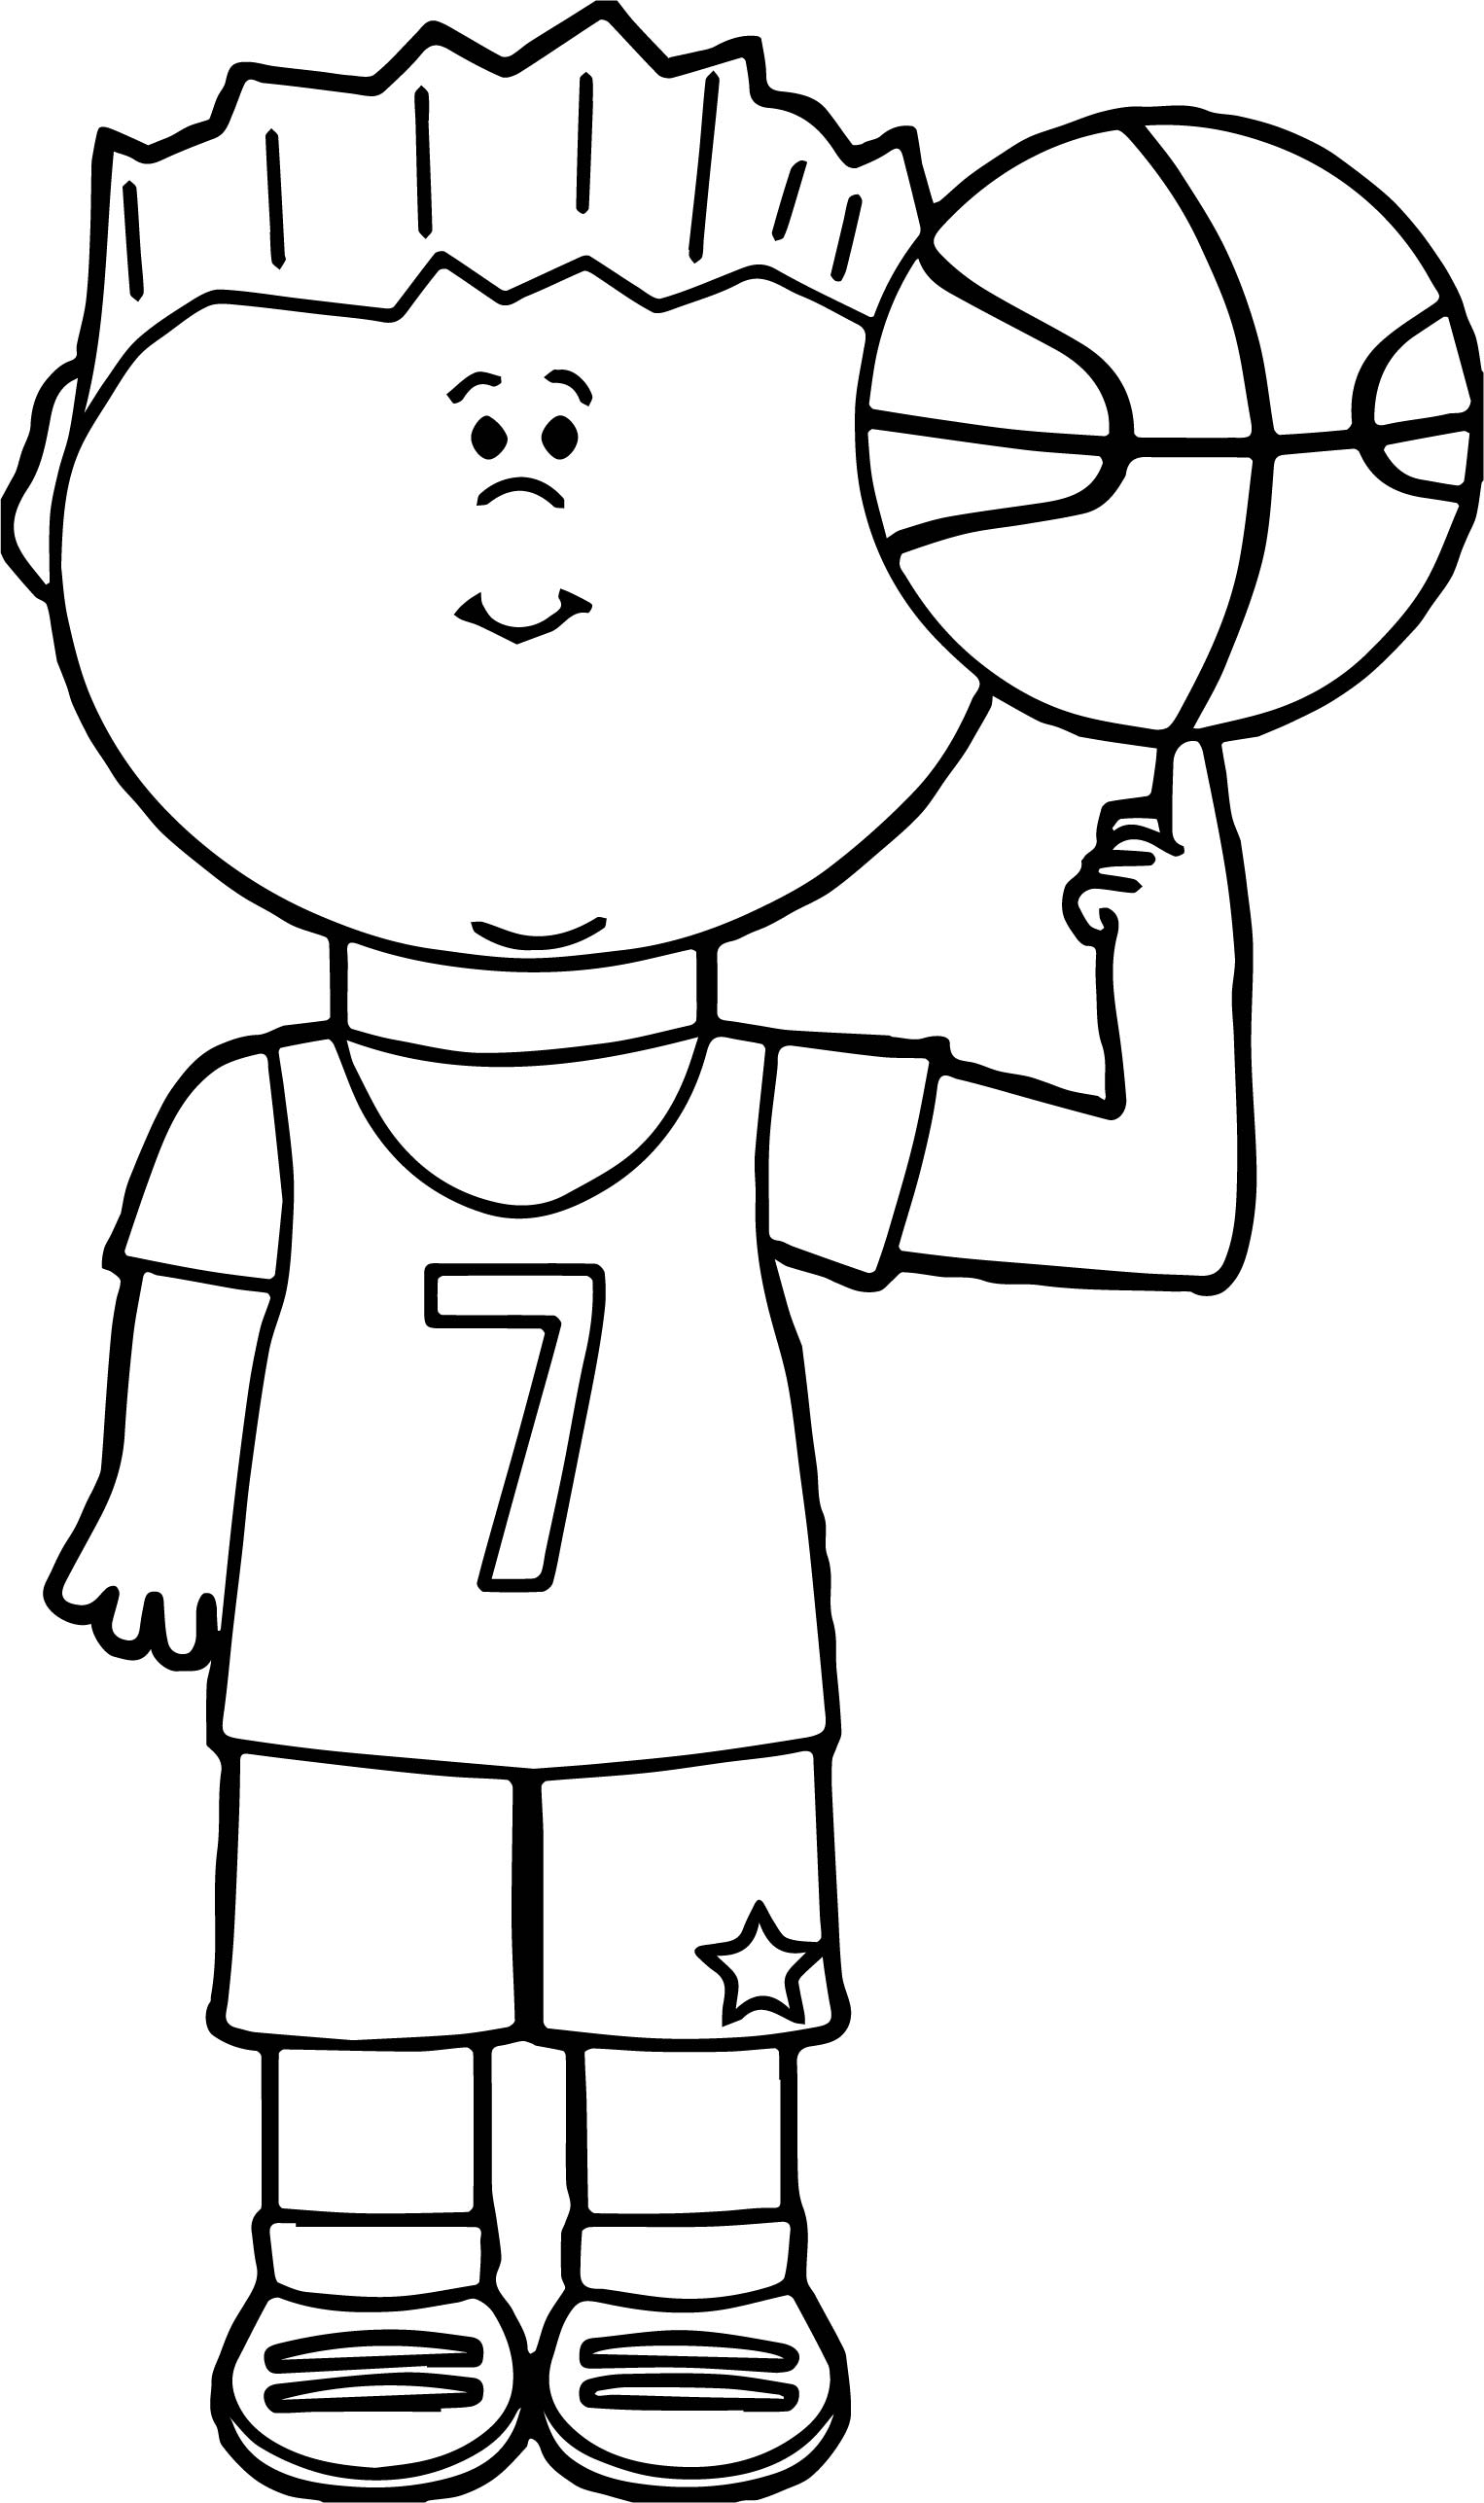 Child Player Balancing Basketball On Finger Playing Basketball Coloring Page